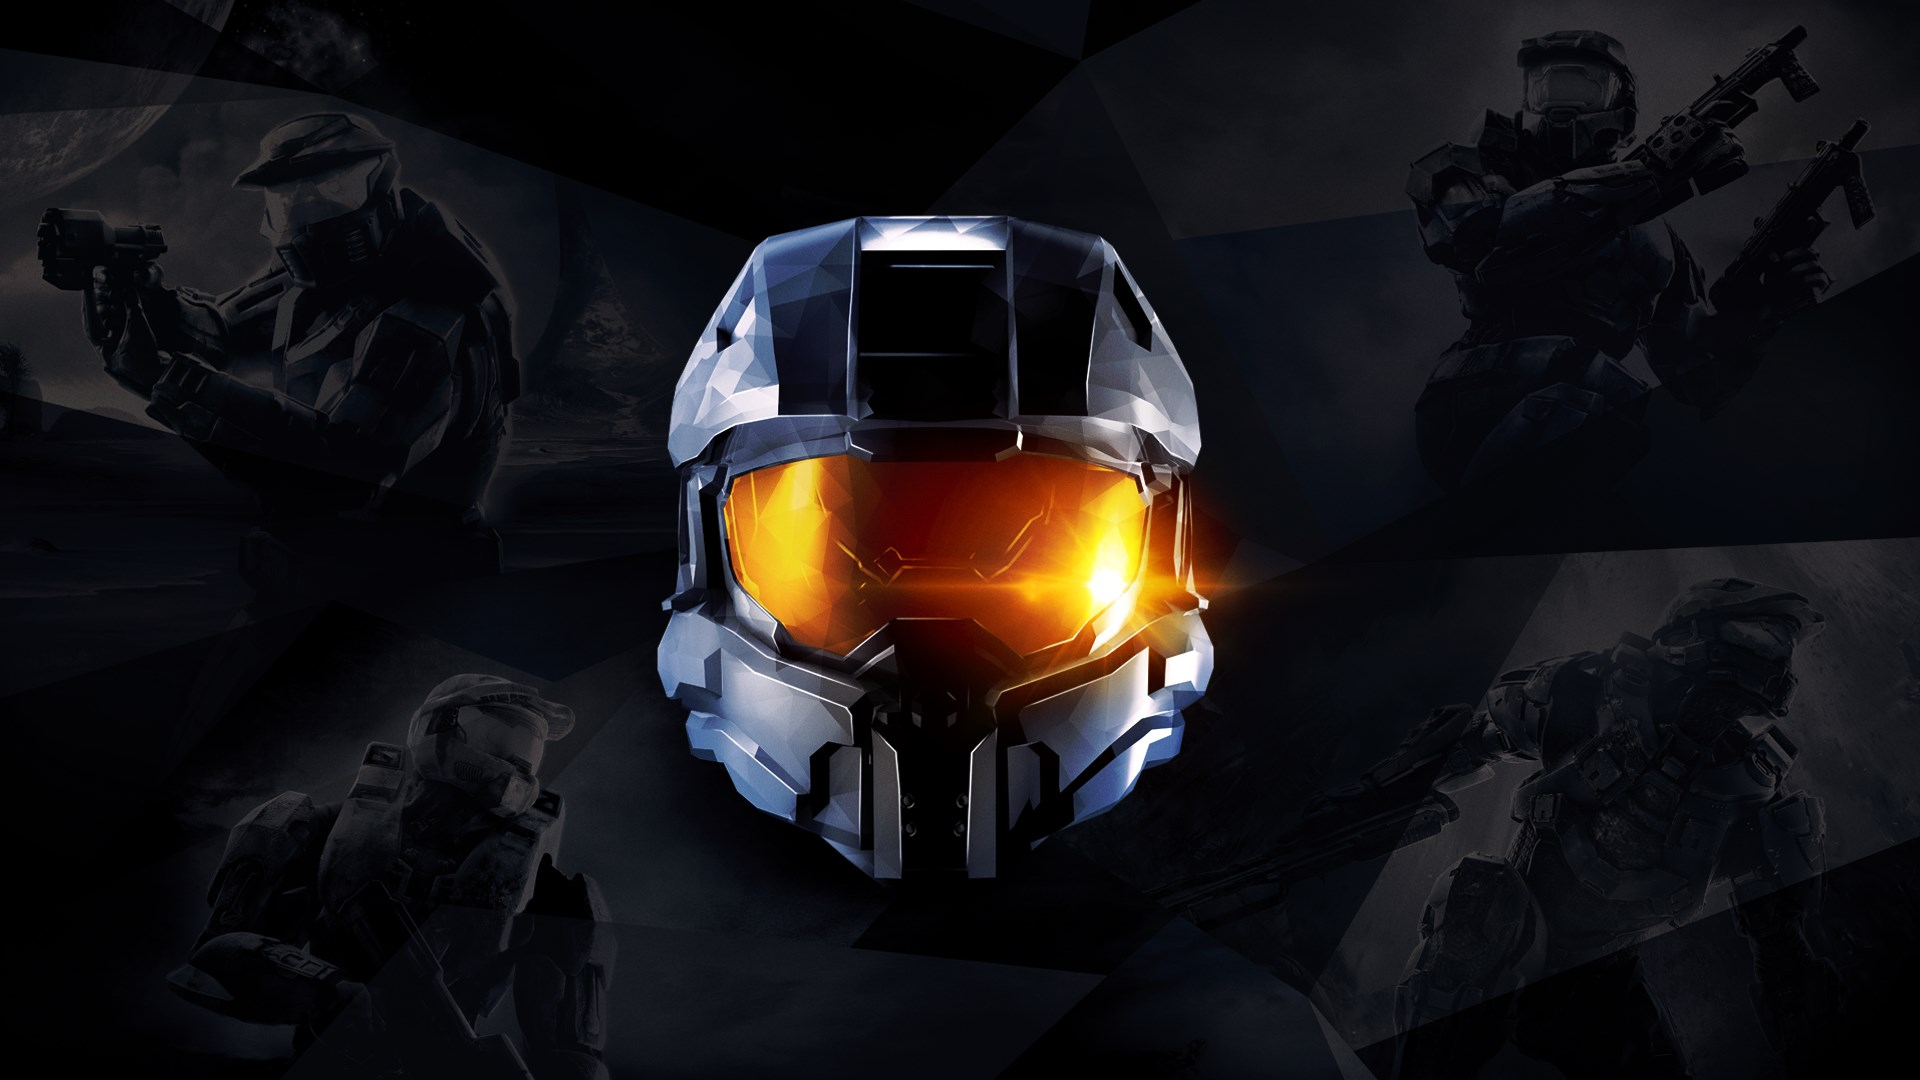 Buy Halo: The Master Chief Collection Digital Bundle - Microsoft Store